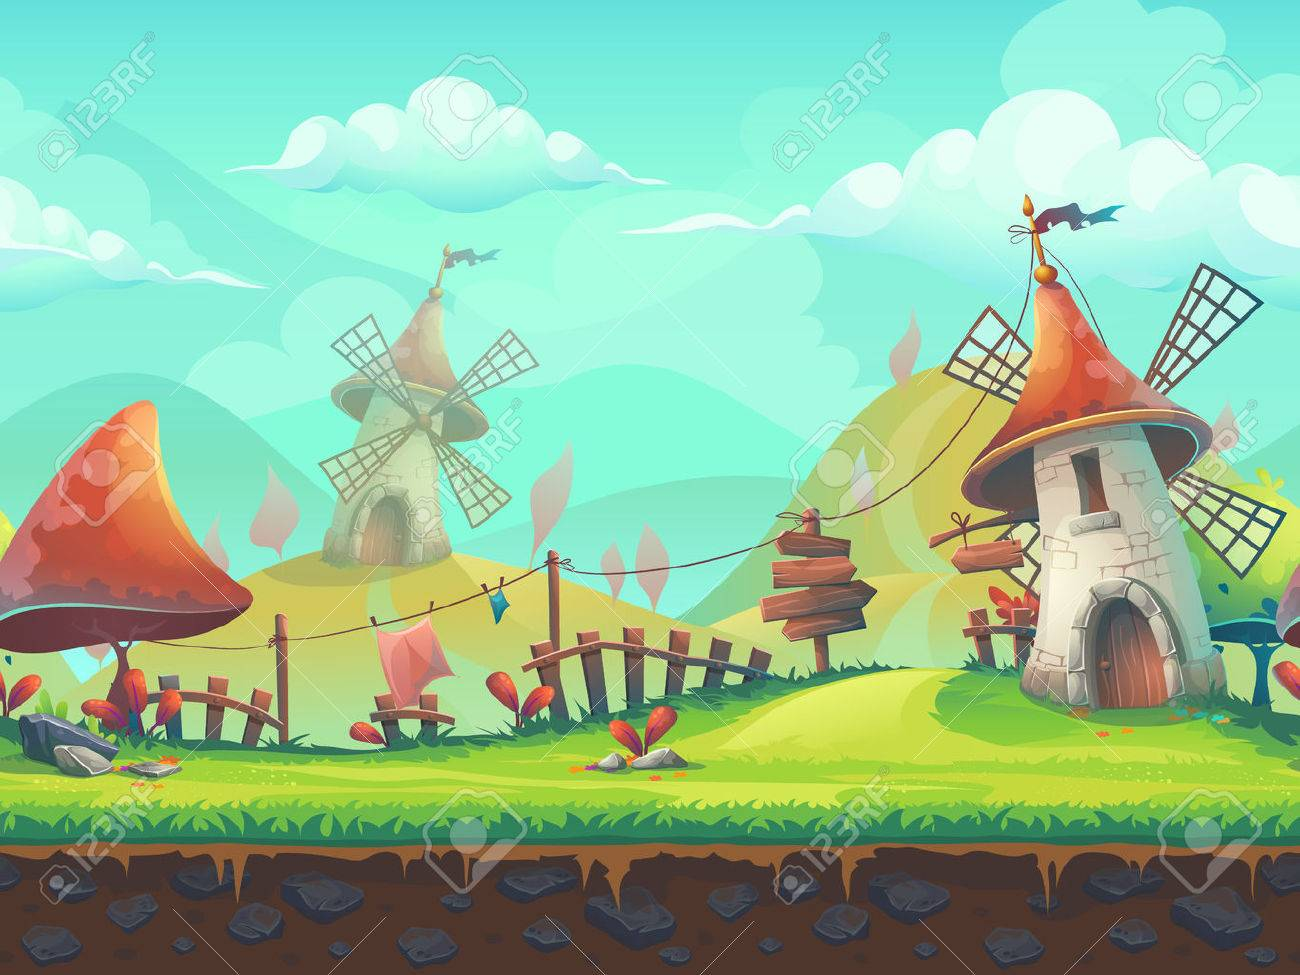 Seamless cartoon stylized illustration on the theme of the European landscape with a windmill. For print, create videos or web graphic design, user interface, card, poster. - 56719616